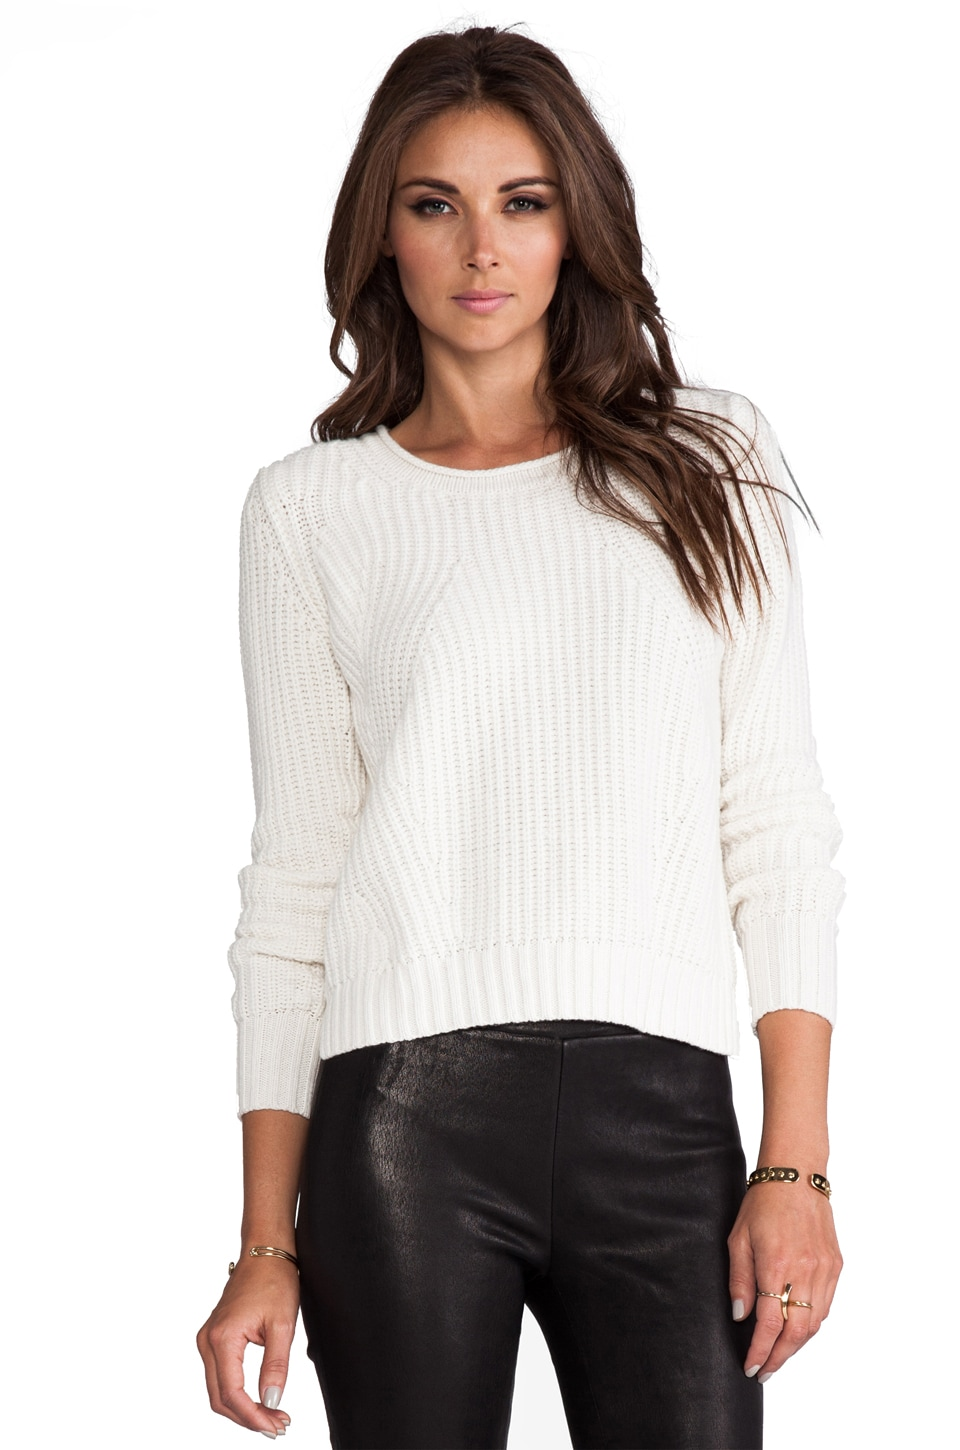 Autumn Cashmere Shaker Stitch Crop Crew in Winter White